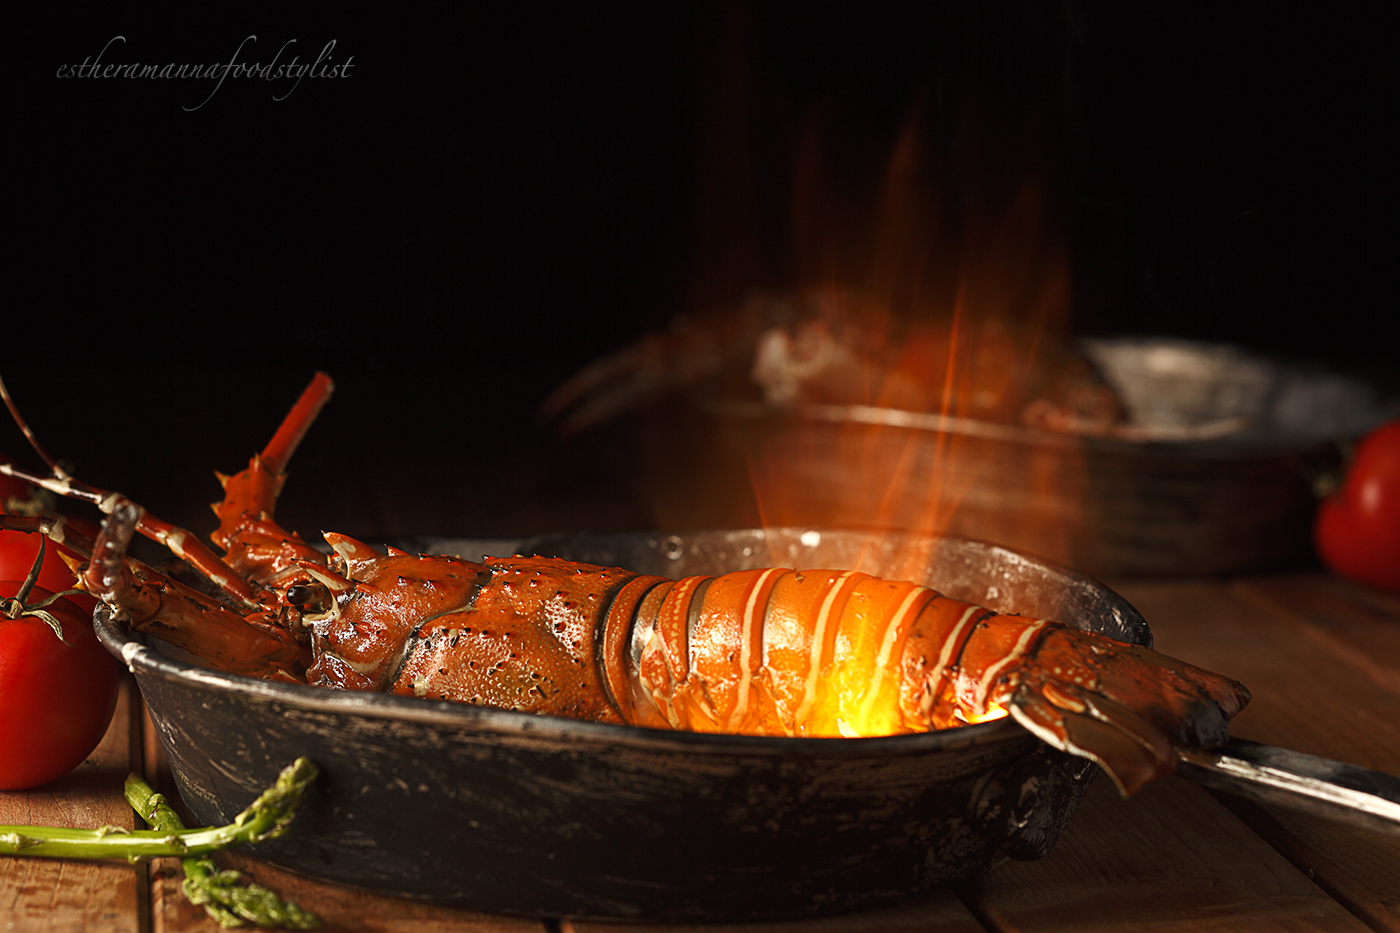 Special effects in food,Grilled lobster flambèd in white wine.